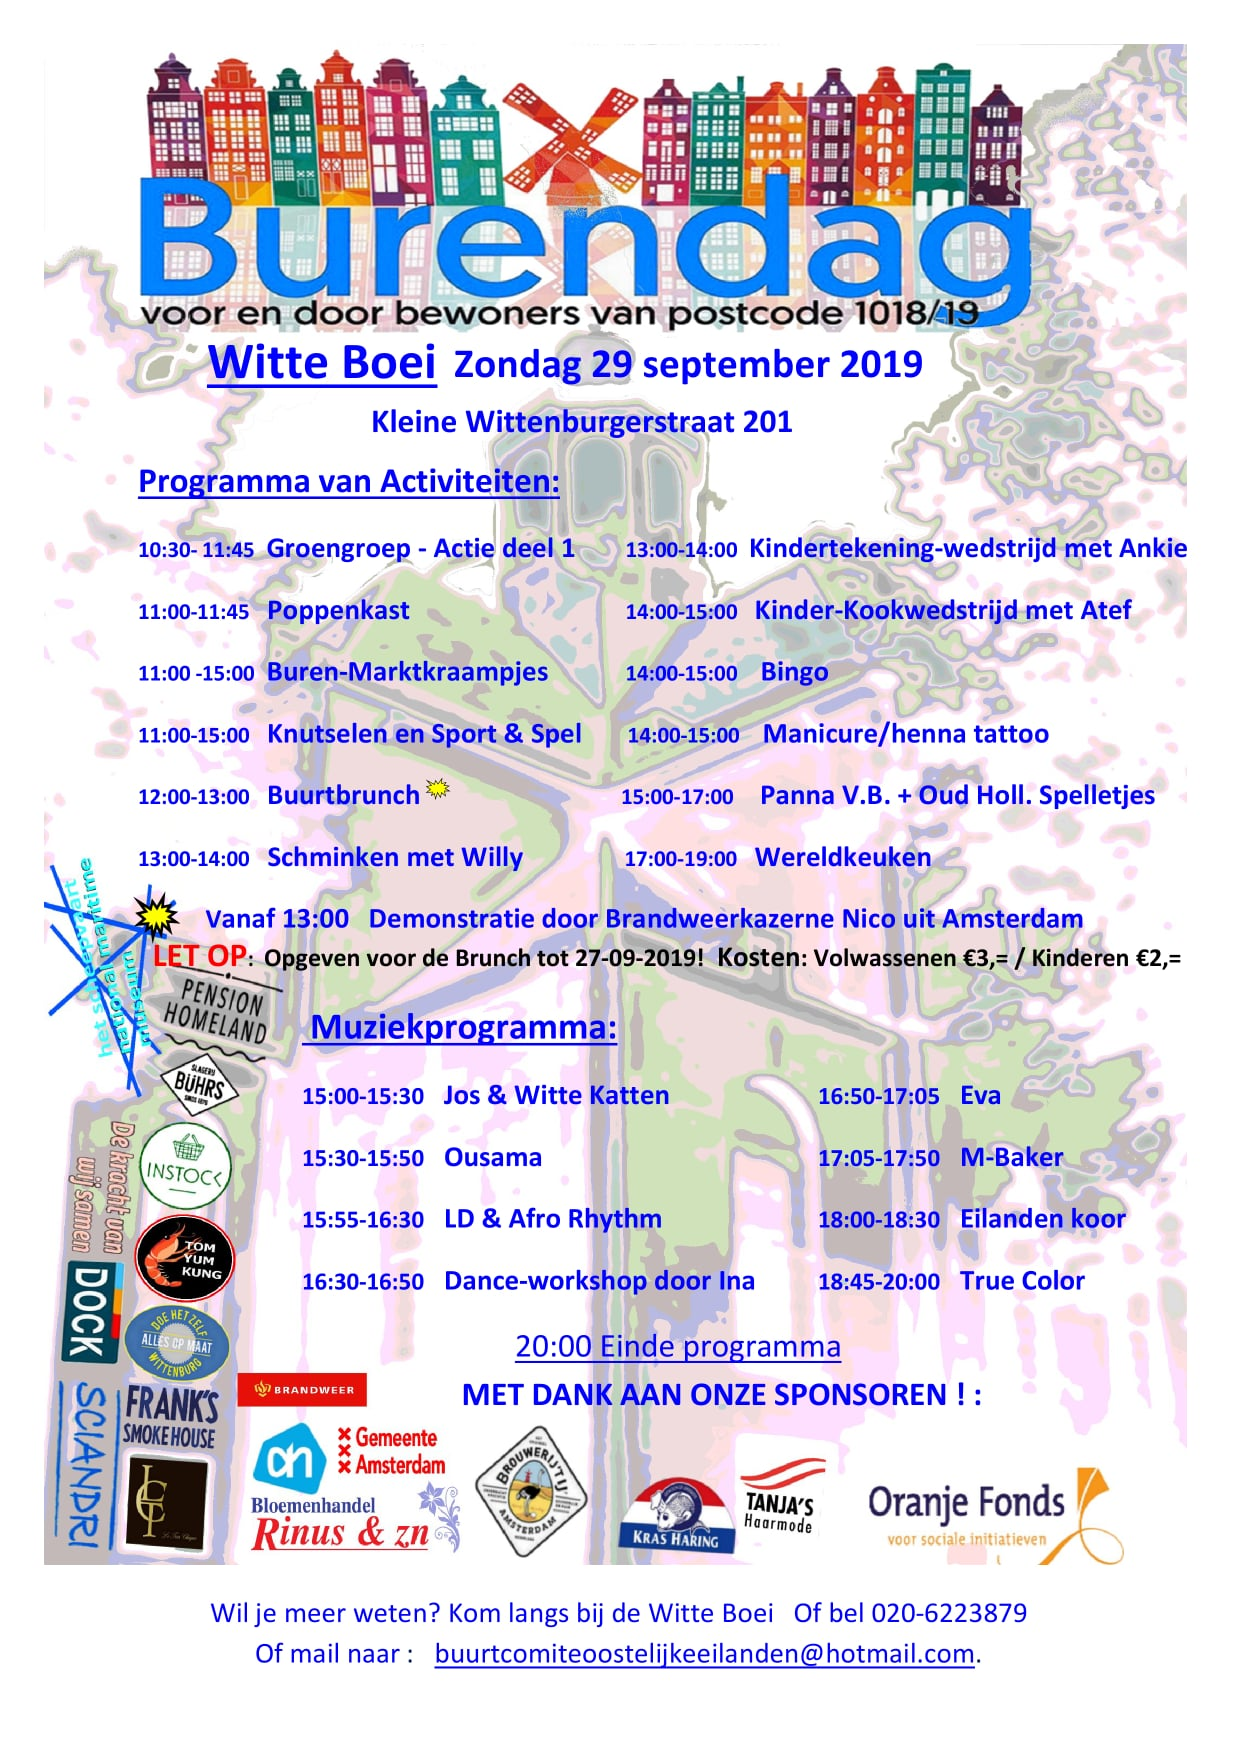 Burendag 29 september 2019 flyer.jpg